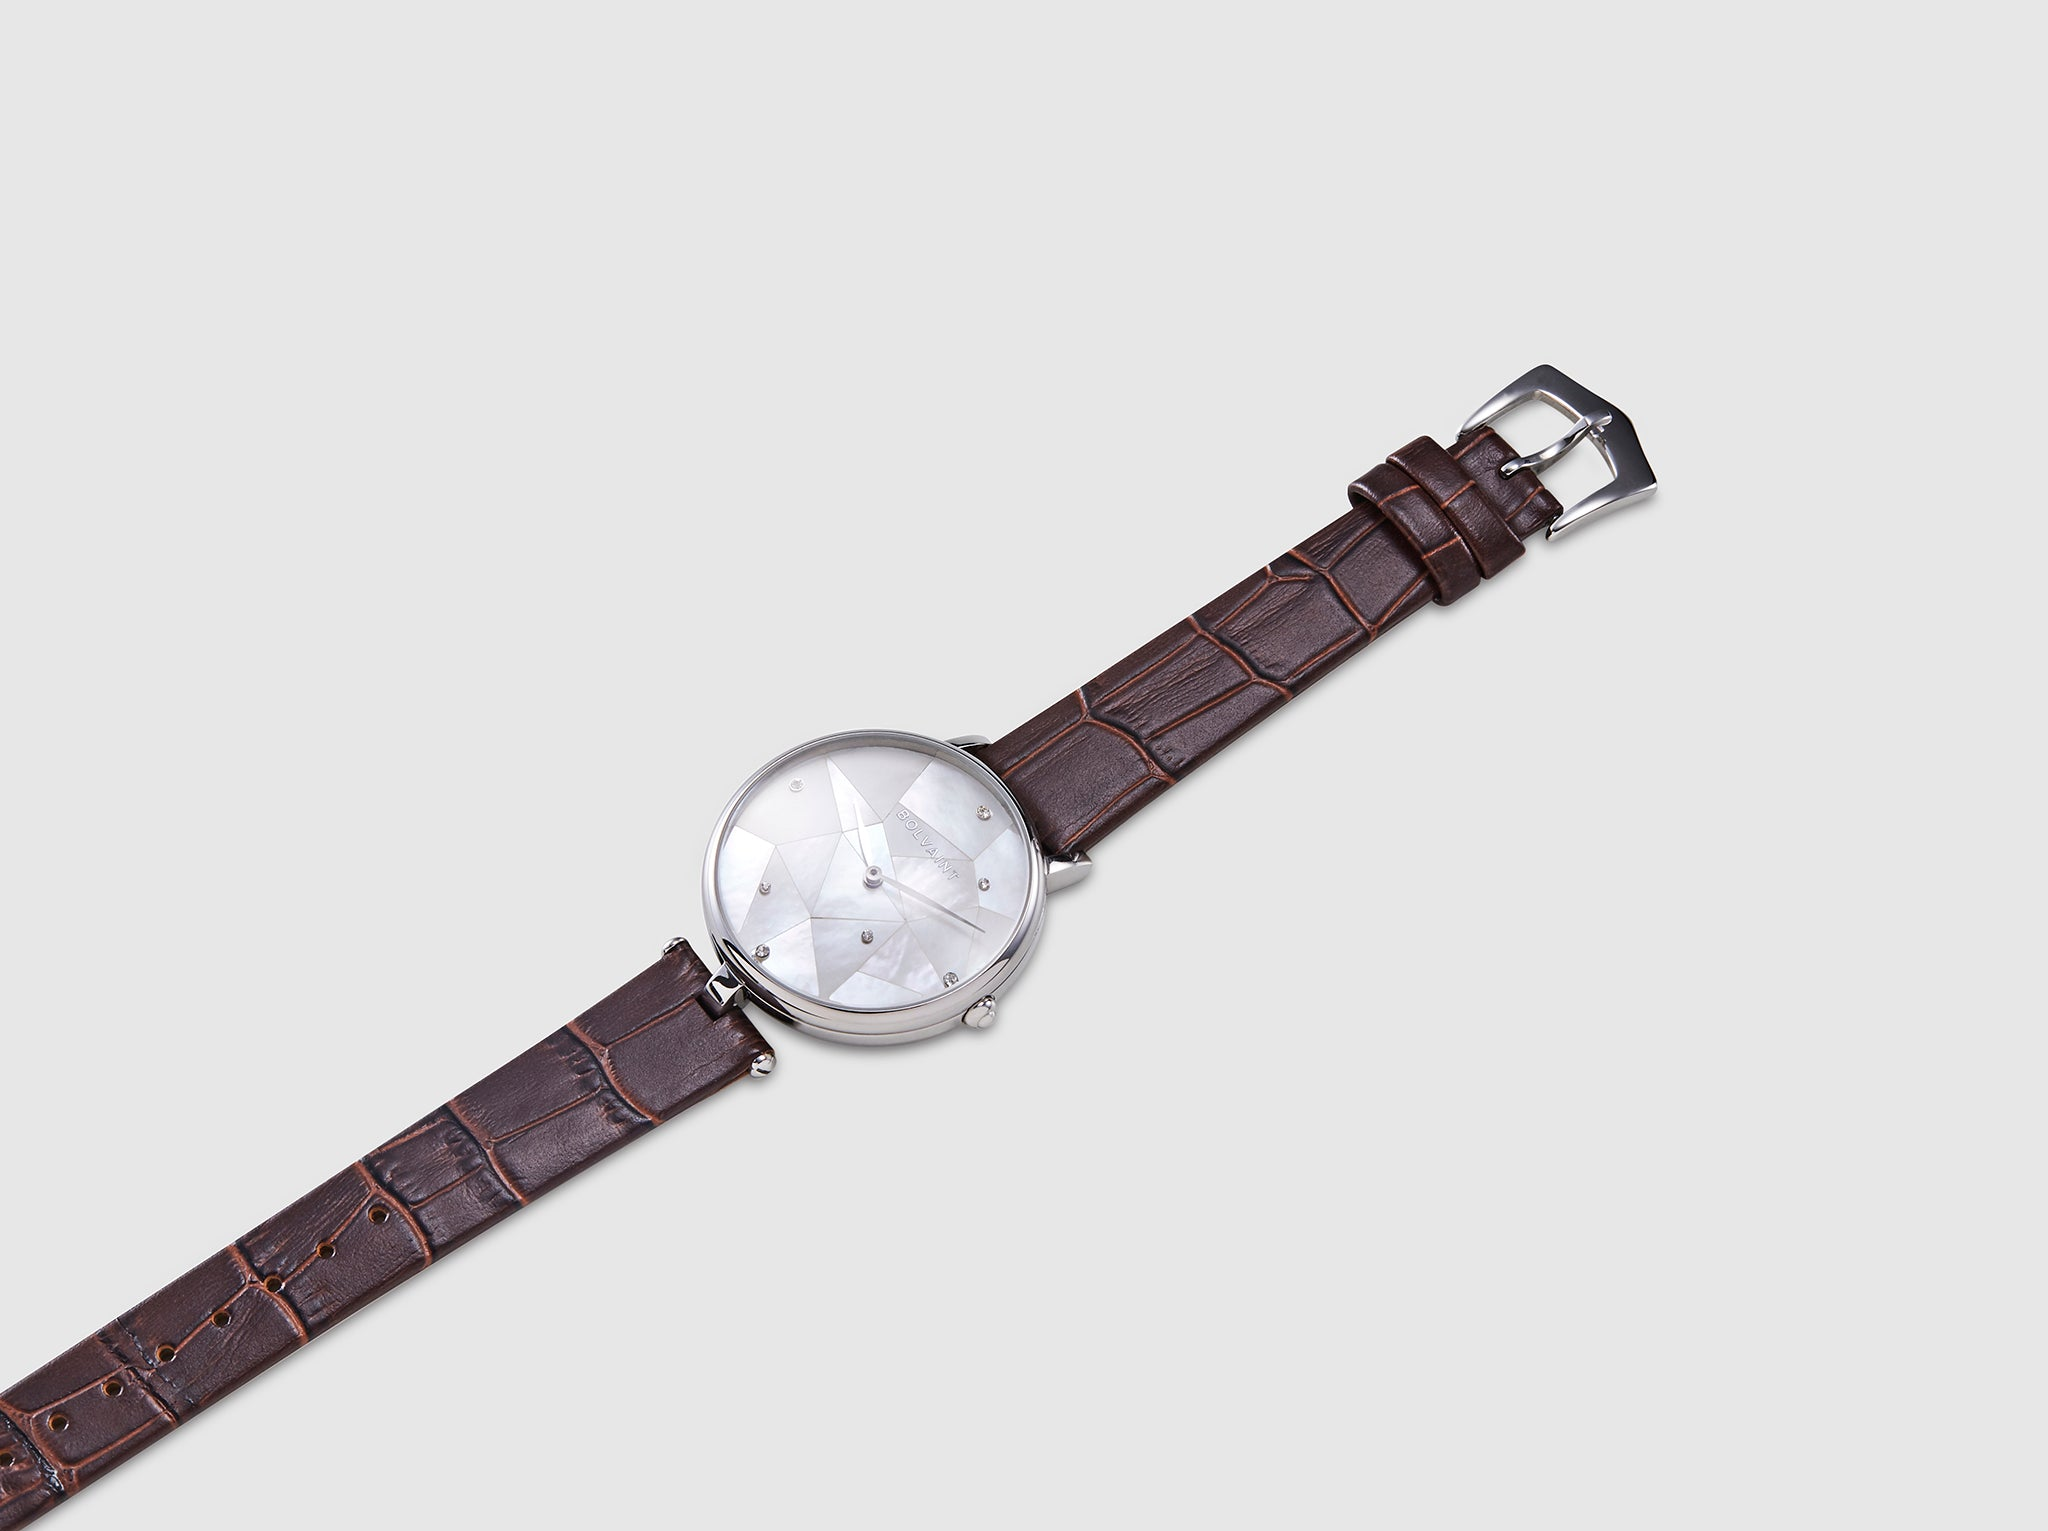 The Bolvaint Vainui Mother-of-Pearl Ladies' Watch – Silver & Garnet Red